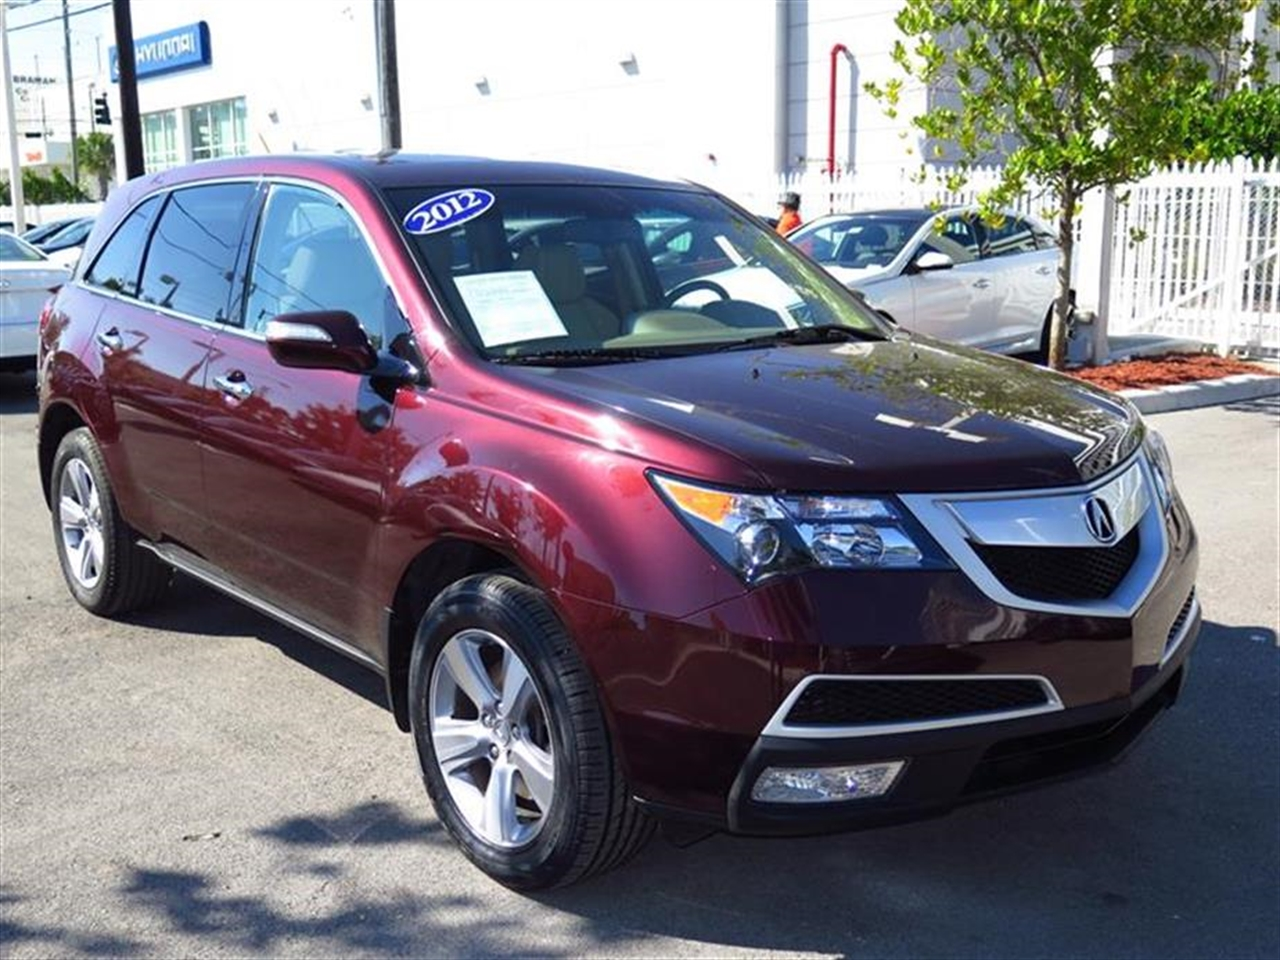 2012 ACUR MDX AWD 4dr Tech Pkg 32426 miles 10 cup holders 2 12 volt pwr outlets 2nd row rec